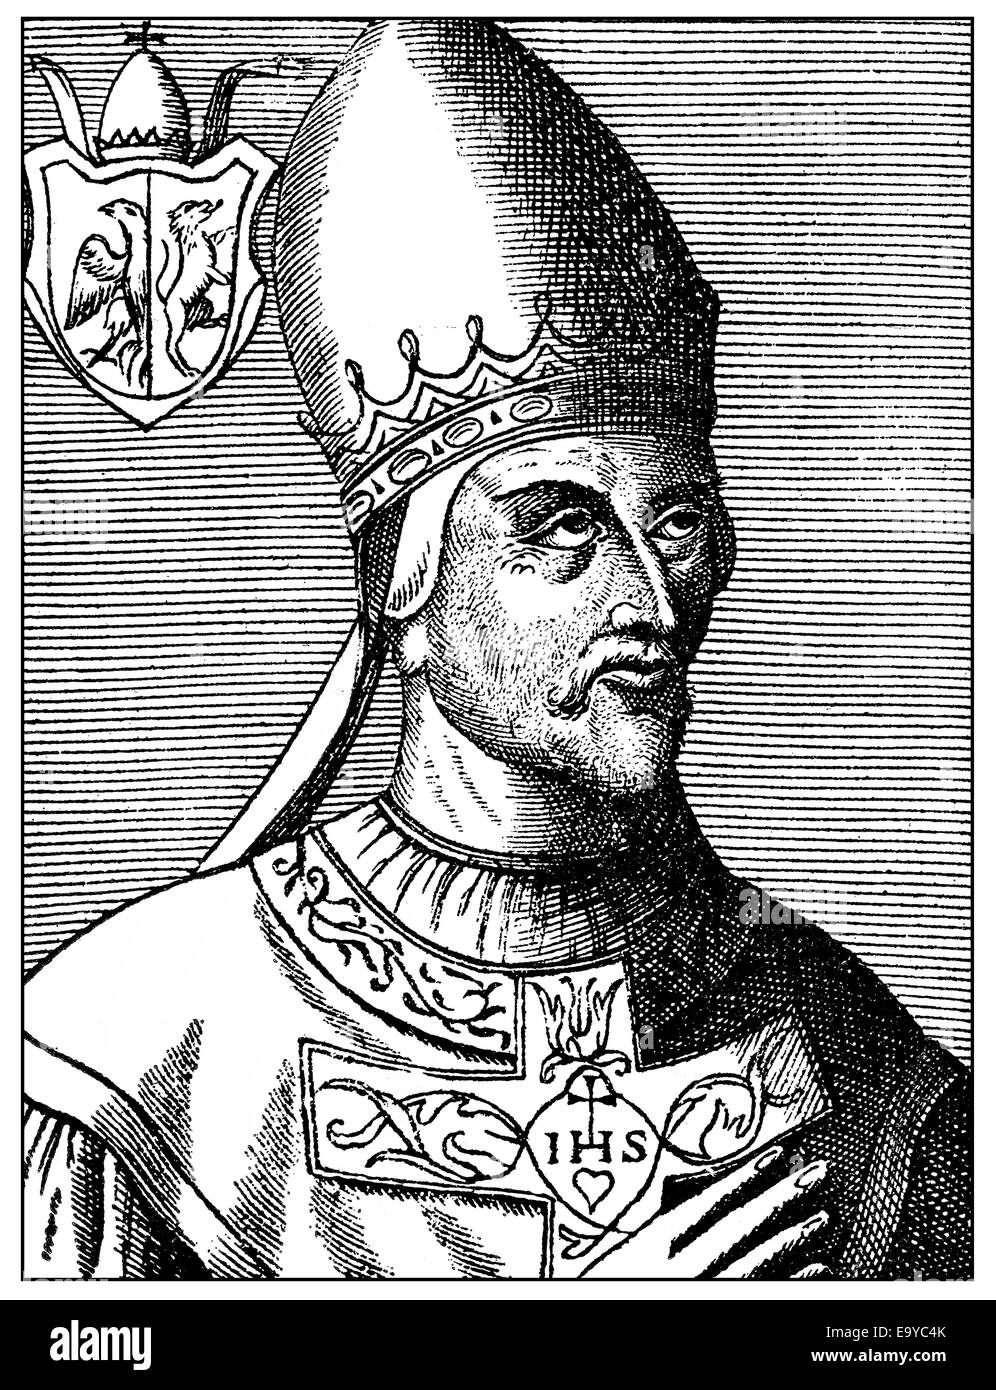 Pope Gregory VIIor Gregorius VII, born Hildebrand of Sovana, Ildebrando da Soana, Pope from 1073 to 1085, Papst - Stock Image